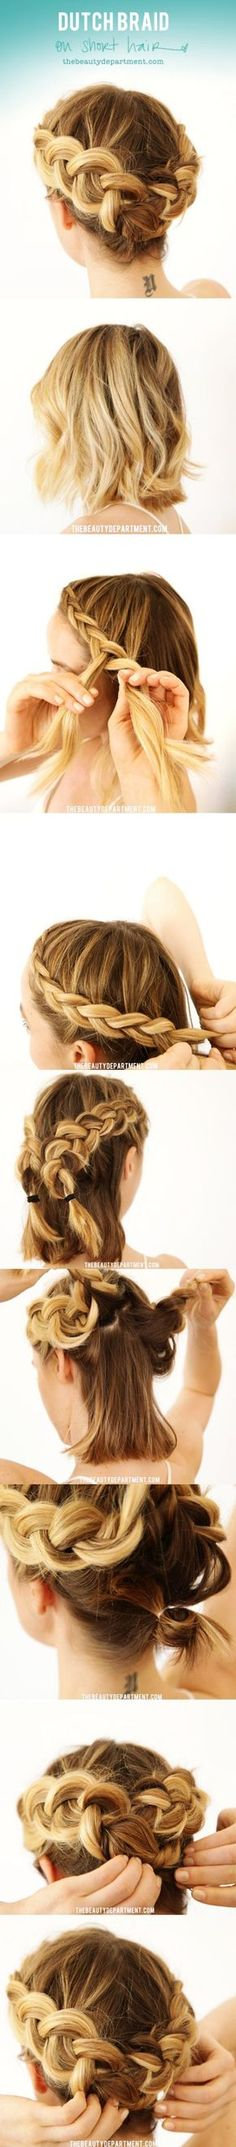 Dutch Braided Crown for Short Hair |||| Quick and Easy Hairstyles for Short Hair | DIY Hairstyles for short Hair | 40 Easy Hairstyles (No Haircuts) for Women with Short Hair – How to Style Short Haircuts